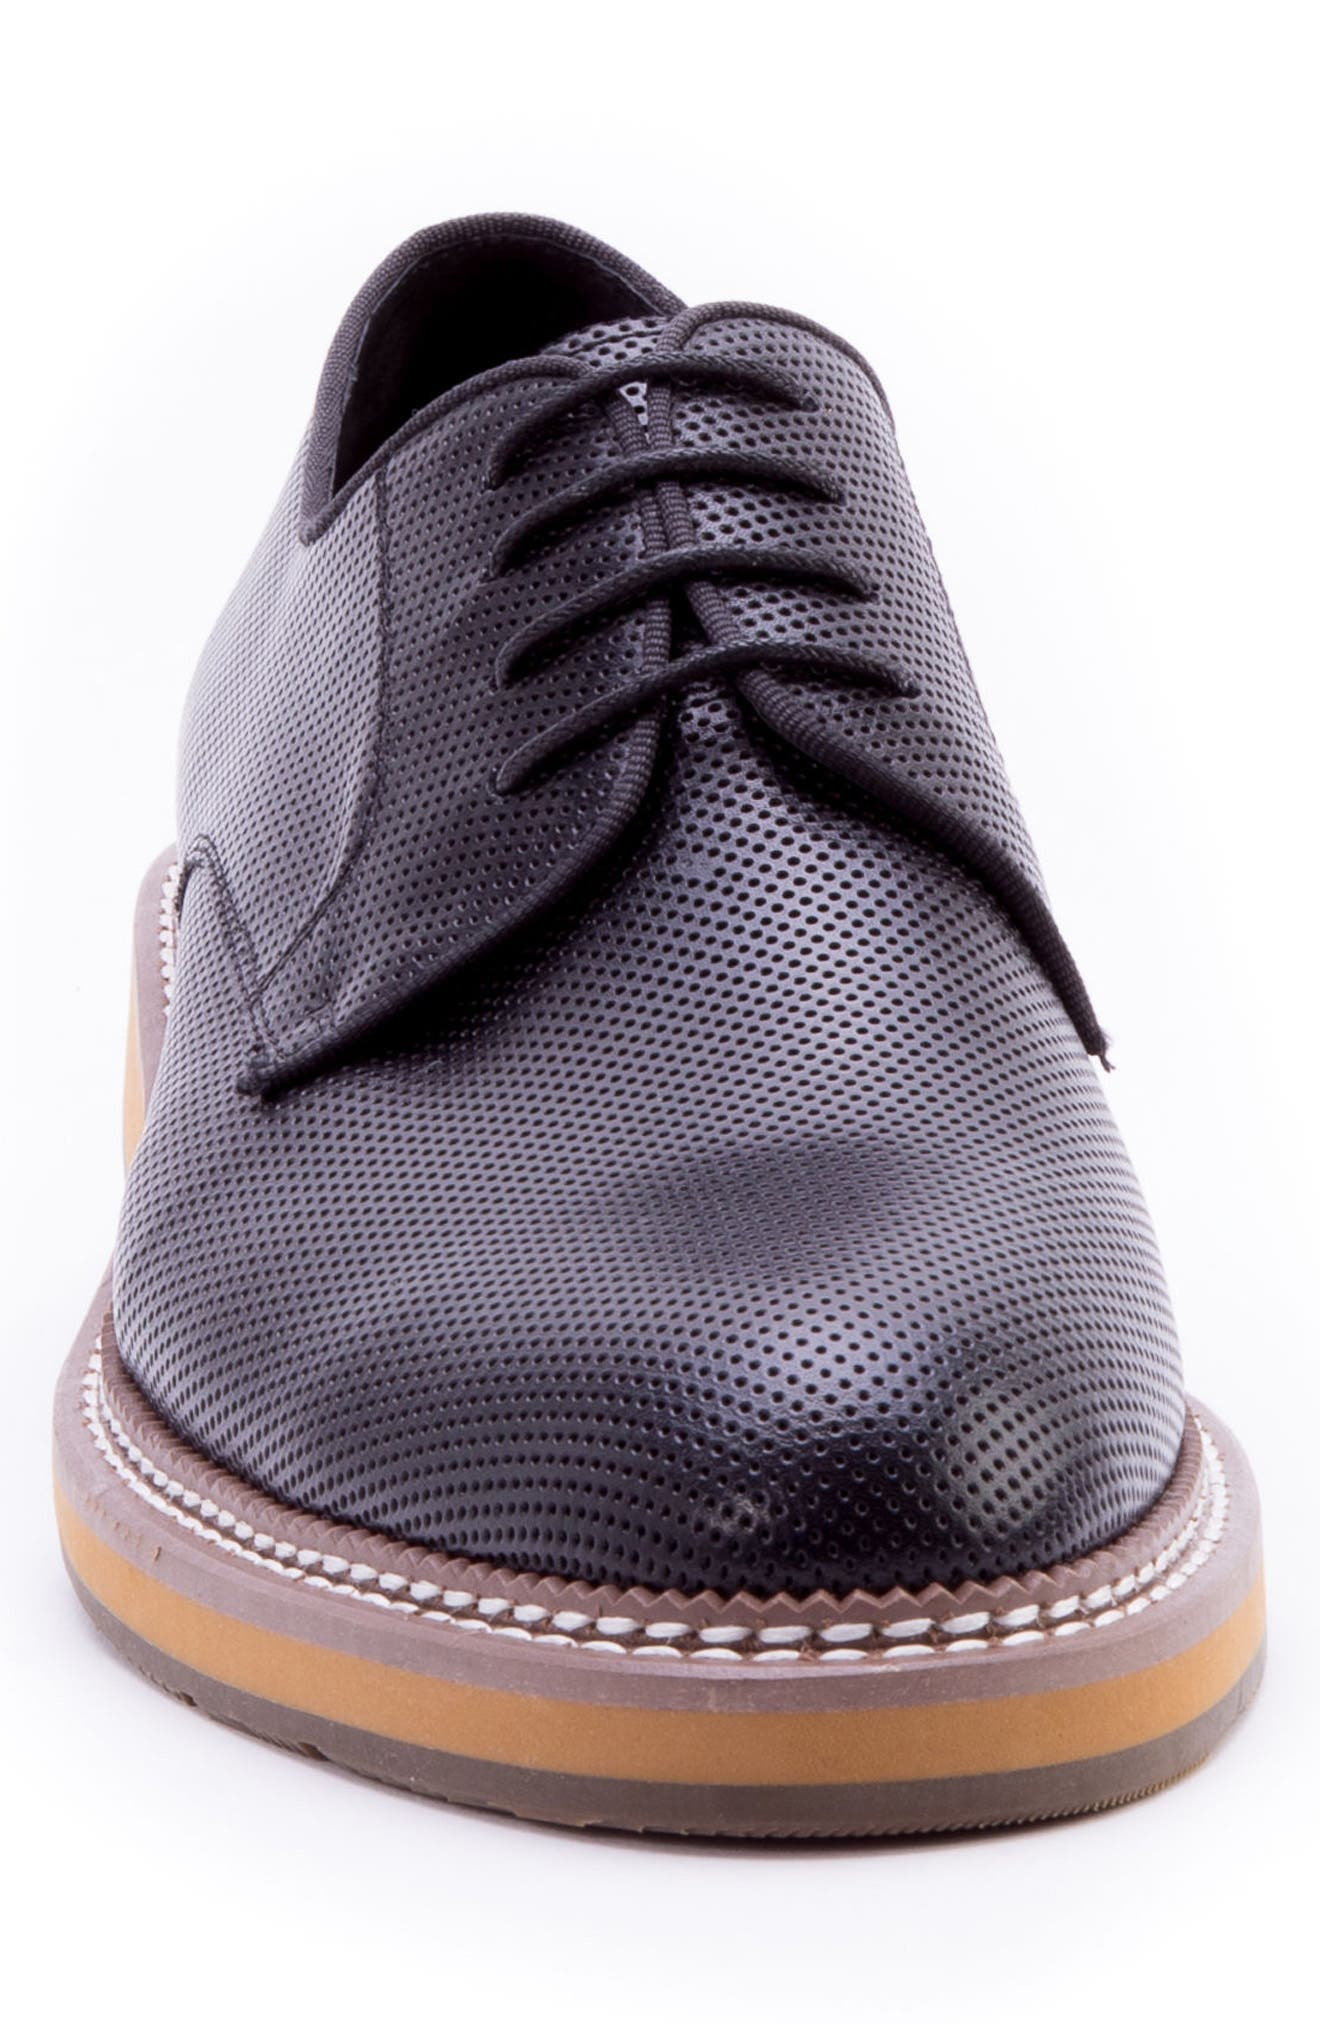 Monticello Perforated Plain Toe Derby,                             Alternate thumbnail 4, color,                             BLACK LEATHER